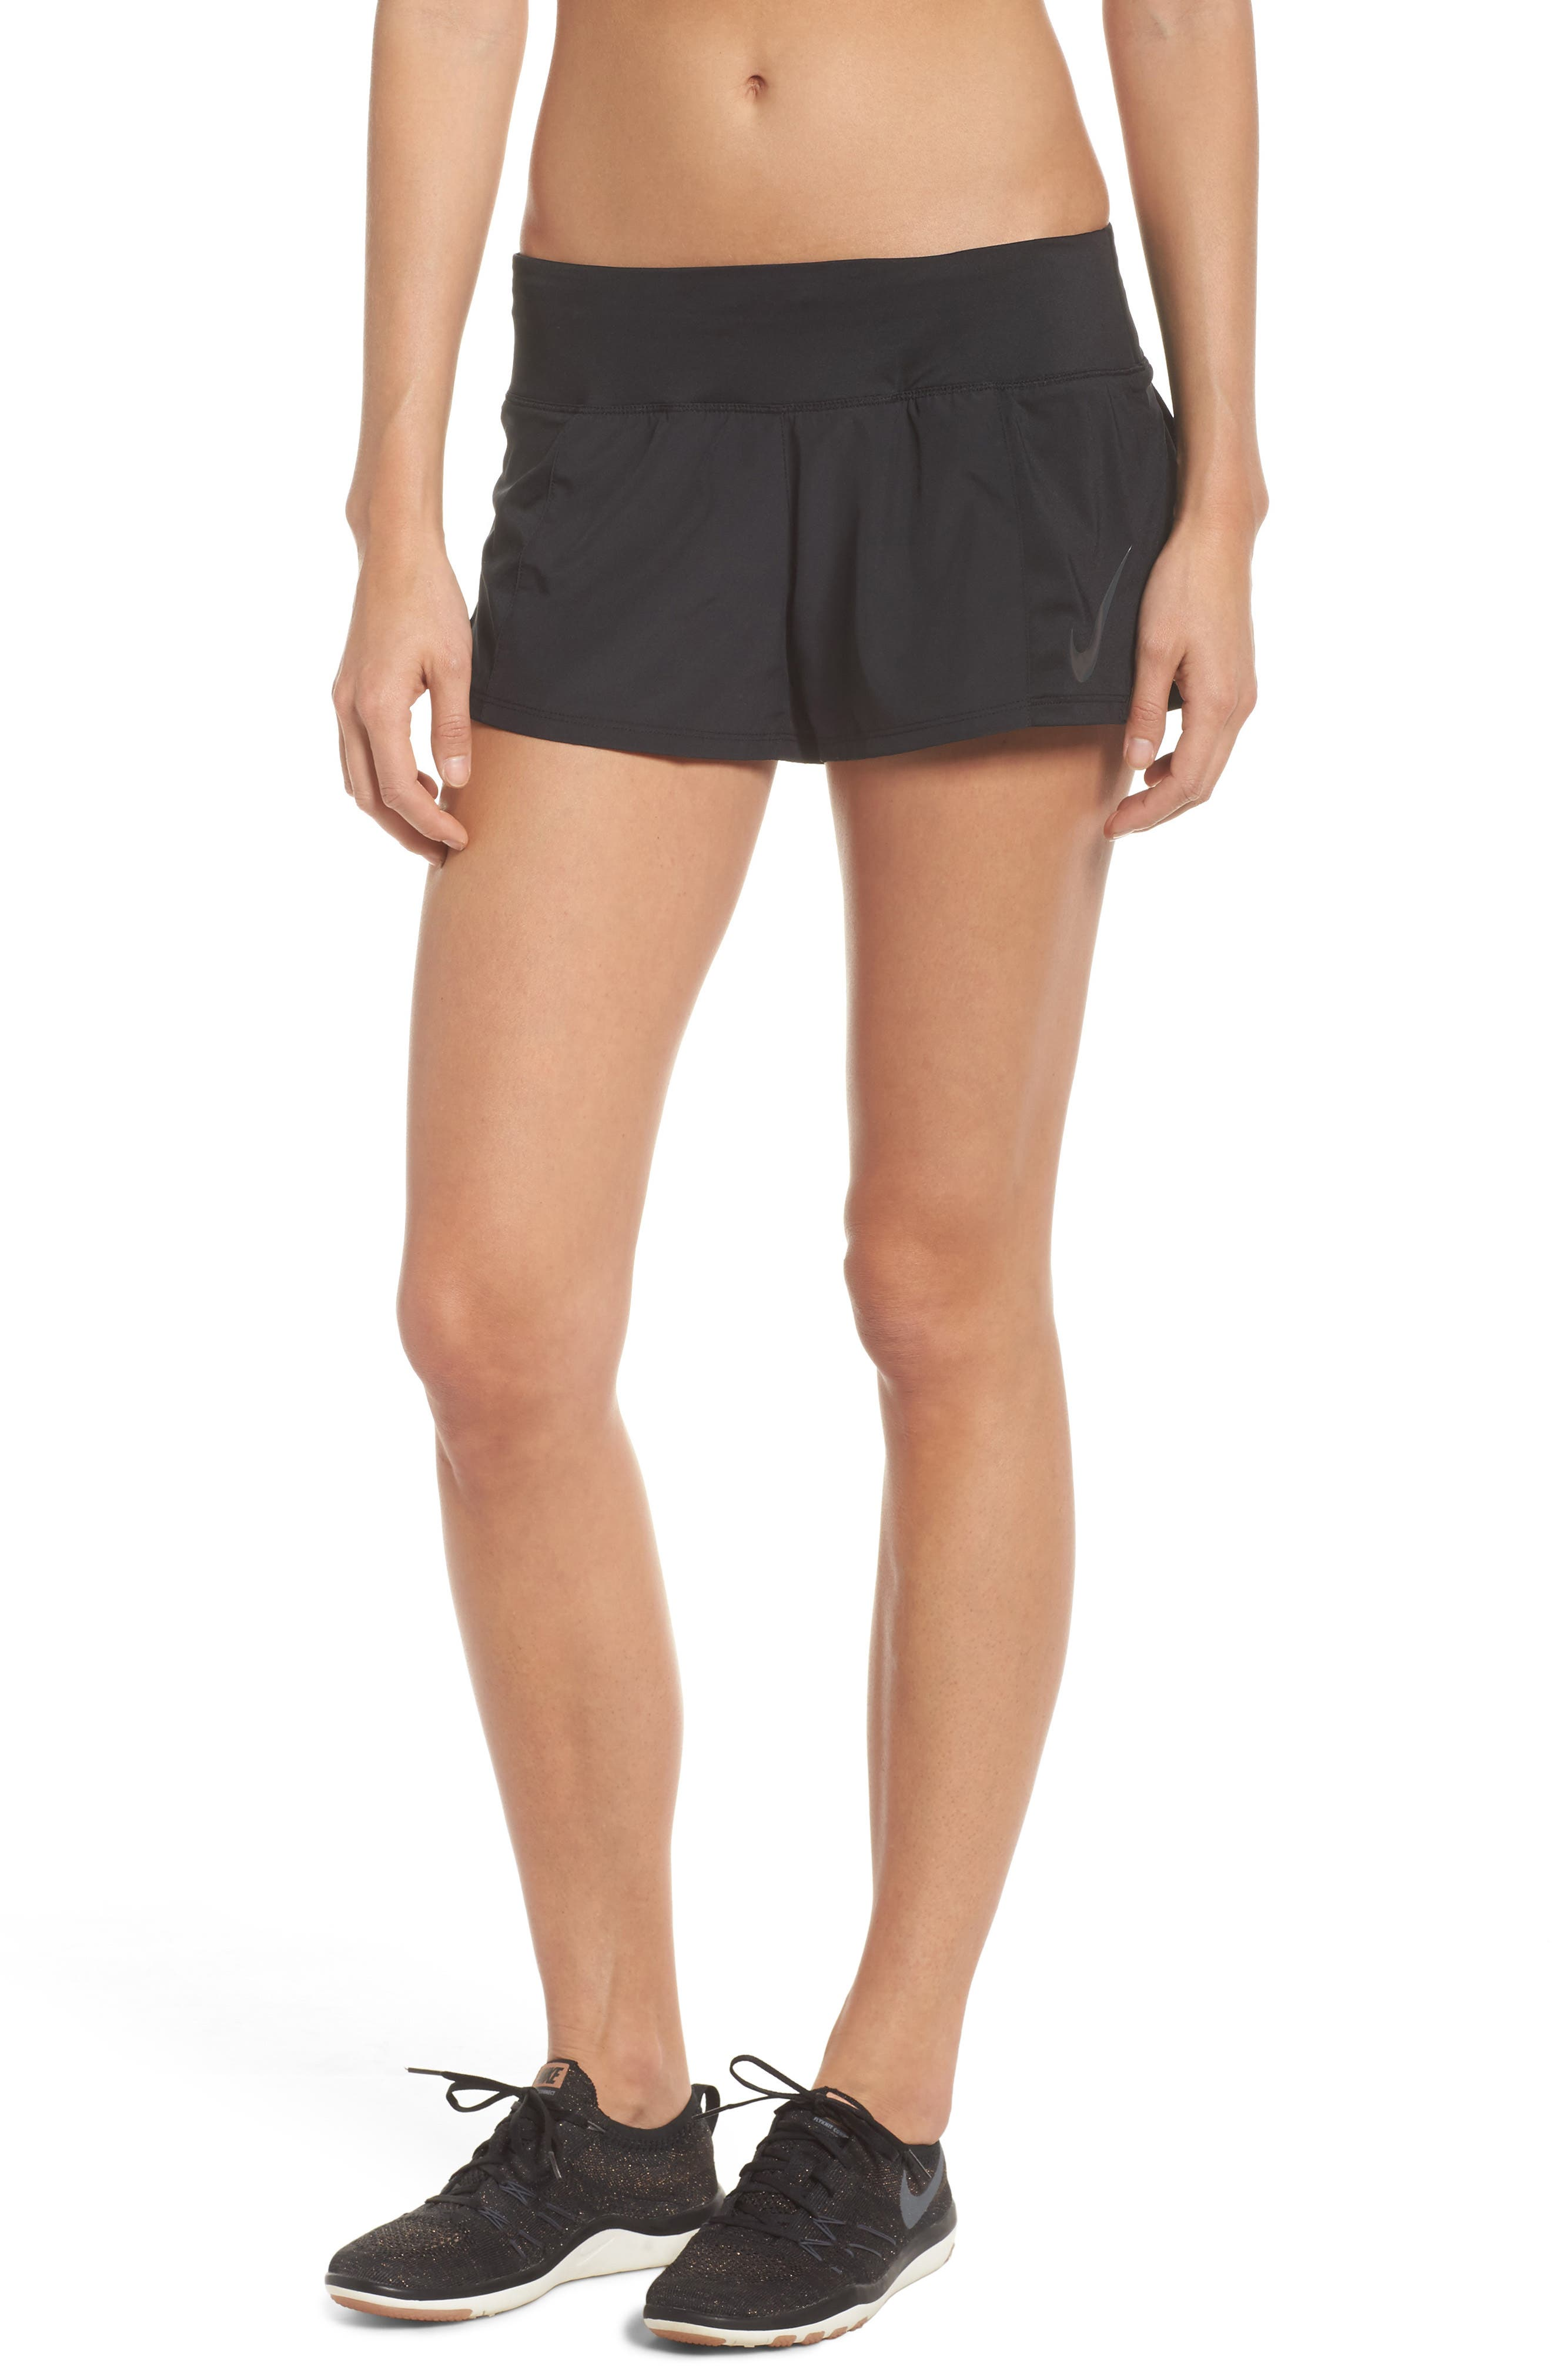 Dry Crew Running Shorts,                         Main,                         color, Black/ Anthracite